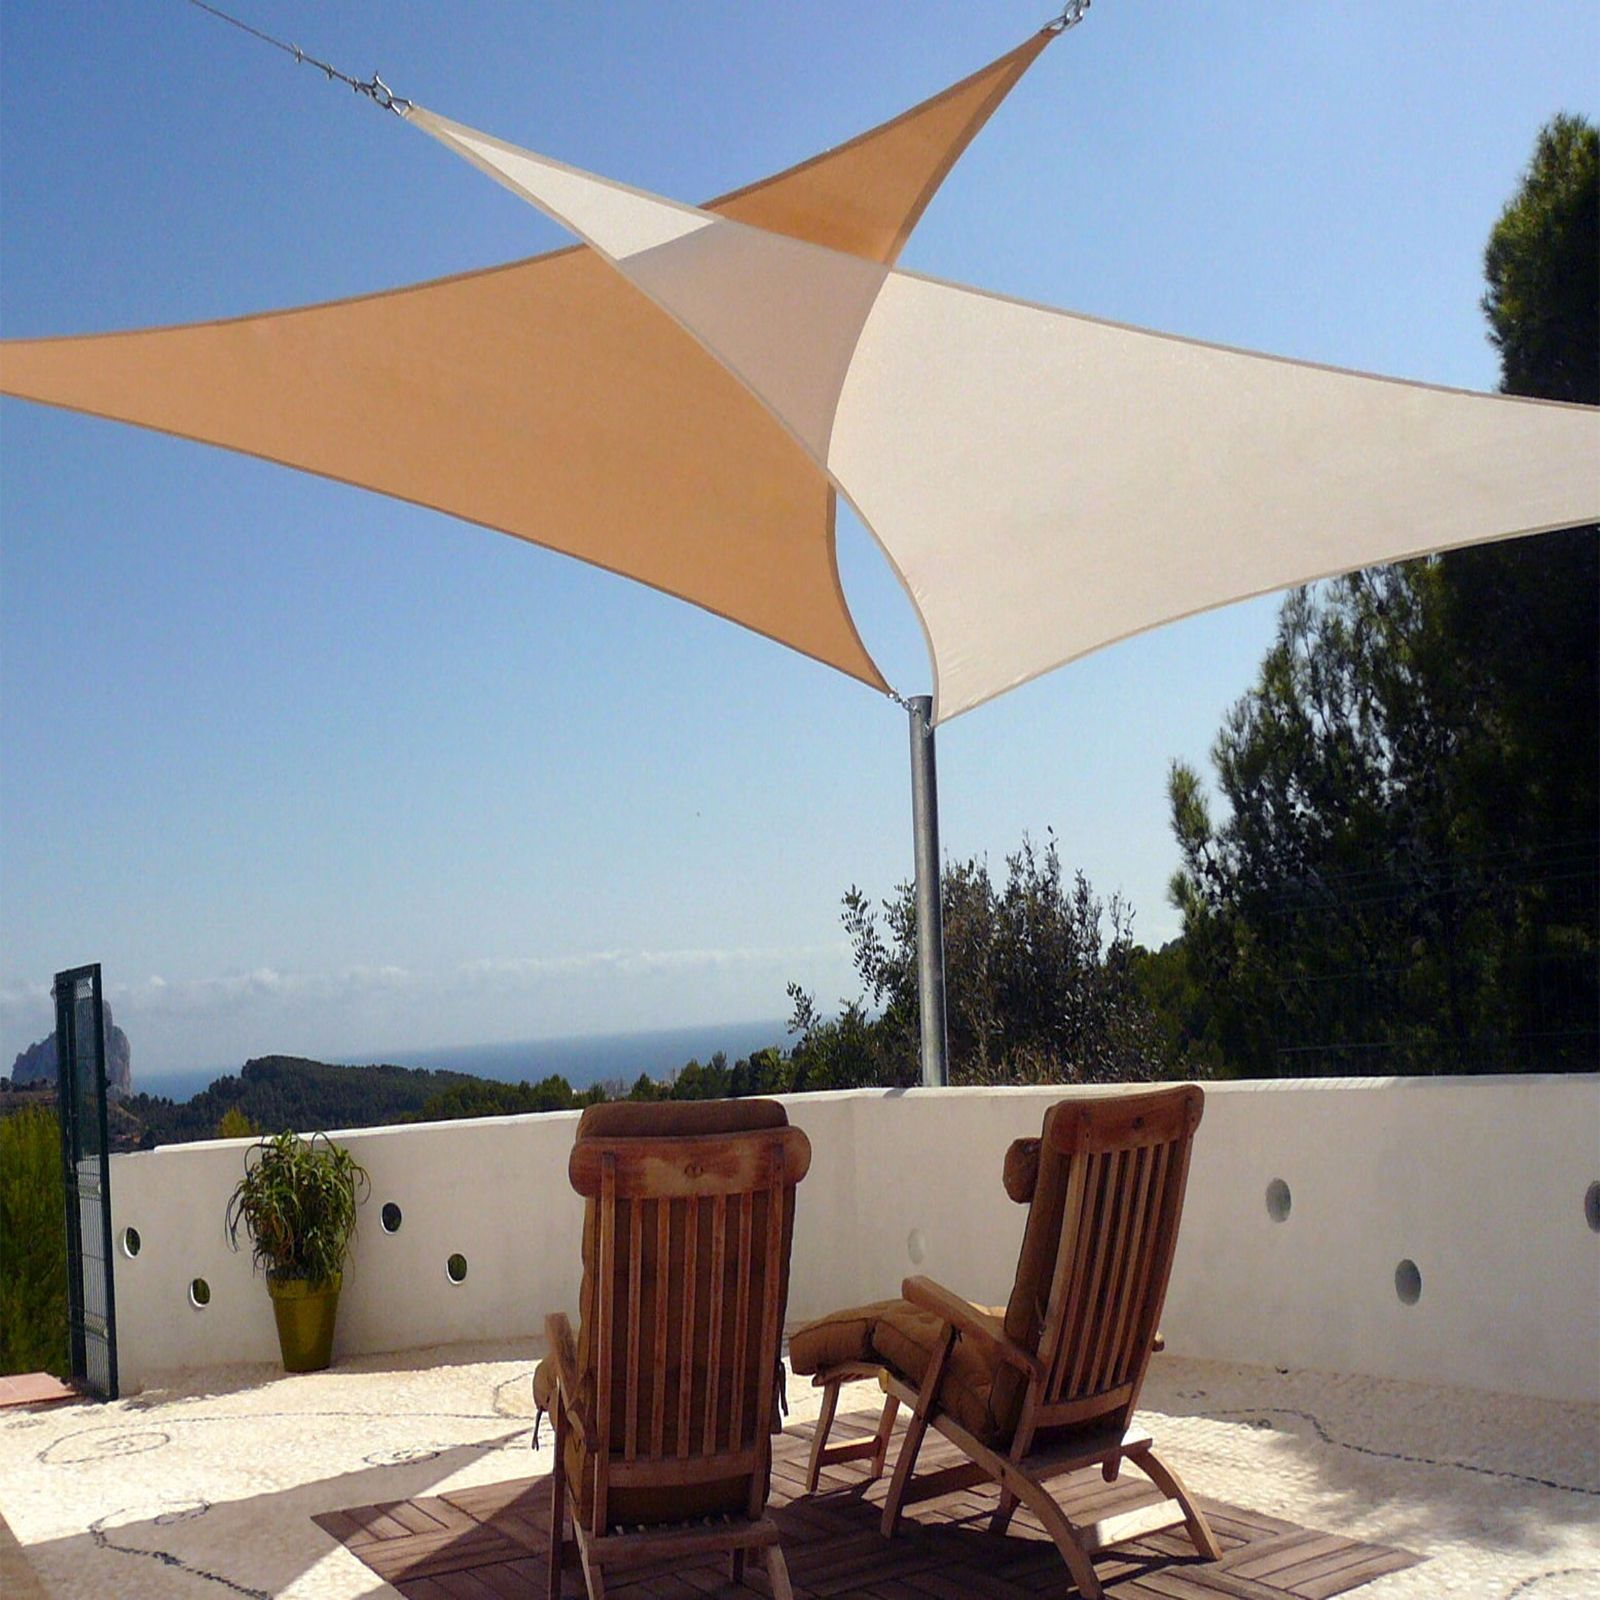 Patio Sun Shades Sails - Outdoor Patio Sail Sun Shade Canopy & Patio Sun Shades Sails - Outdoor Patio Sail Sun Shade Canopy ...